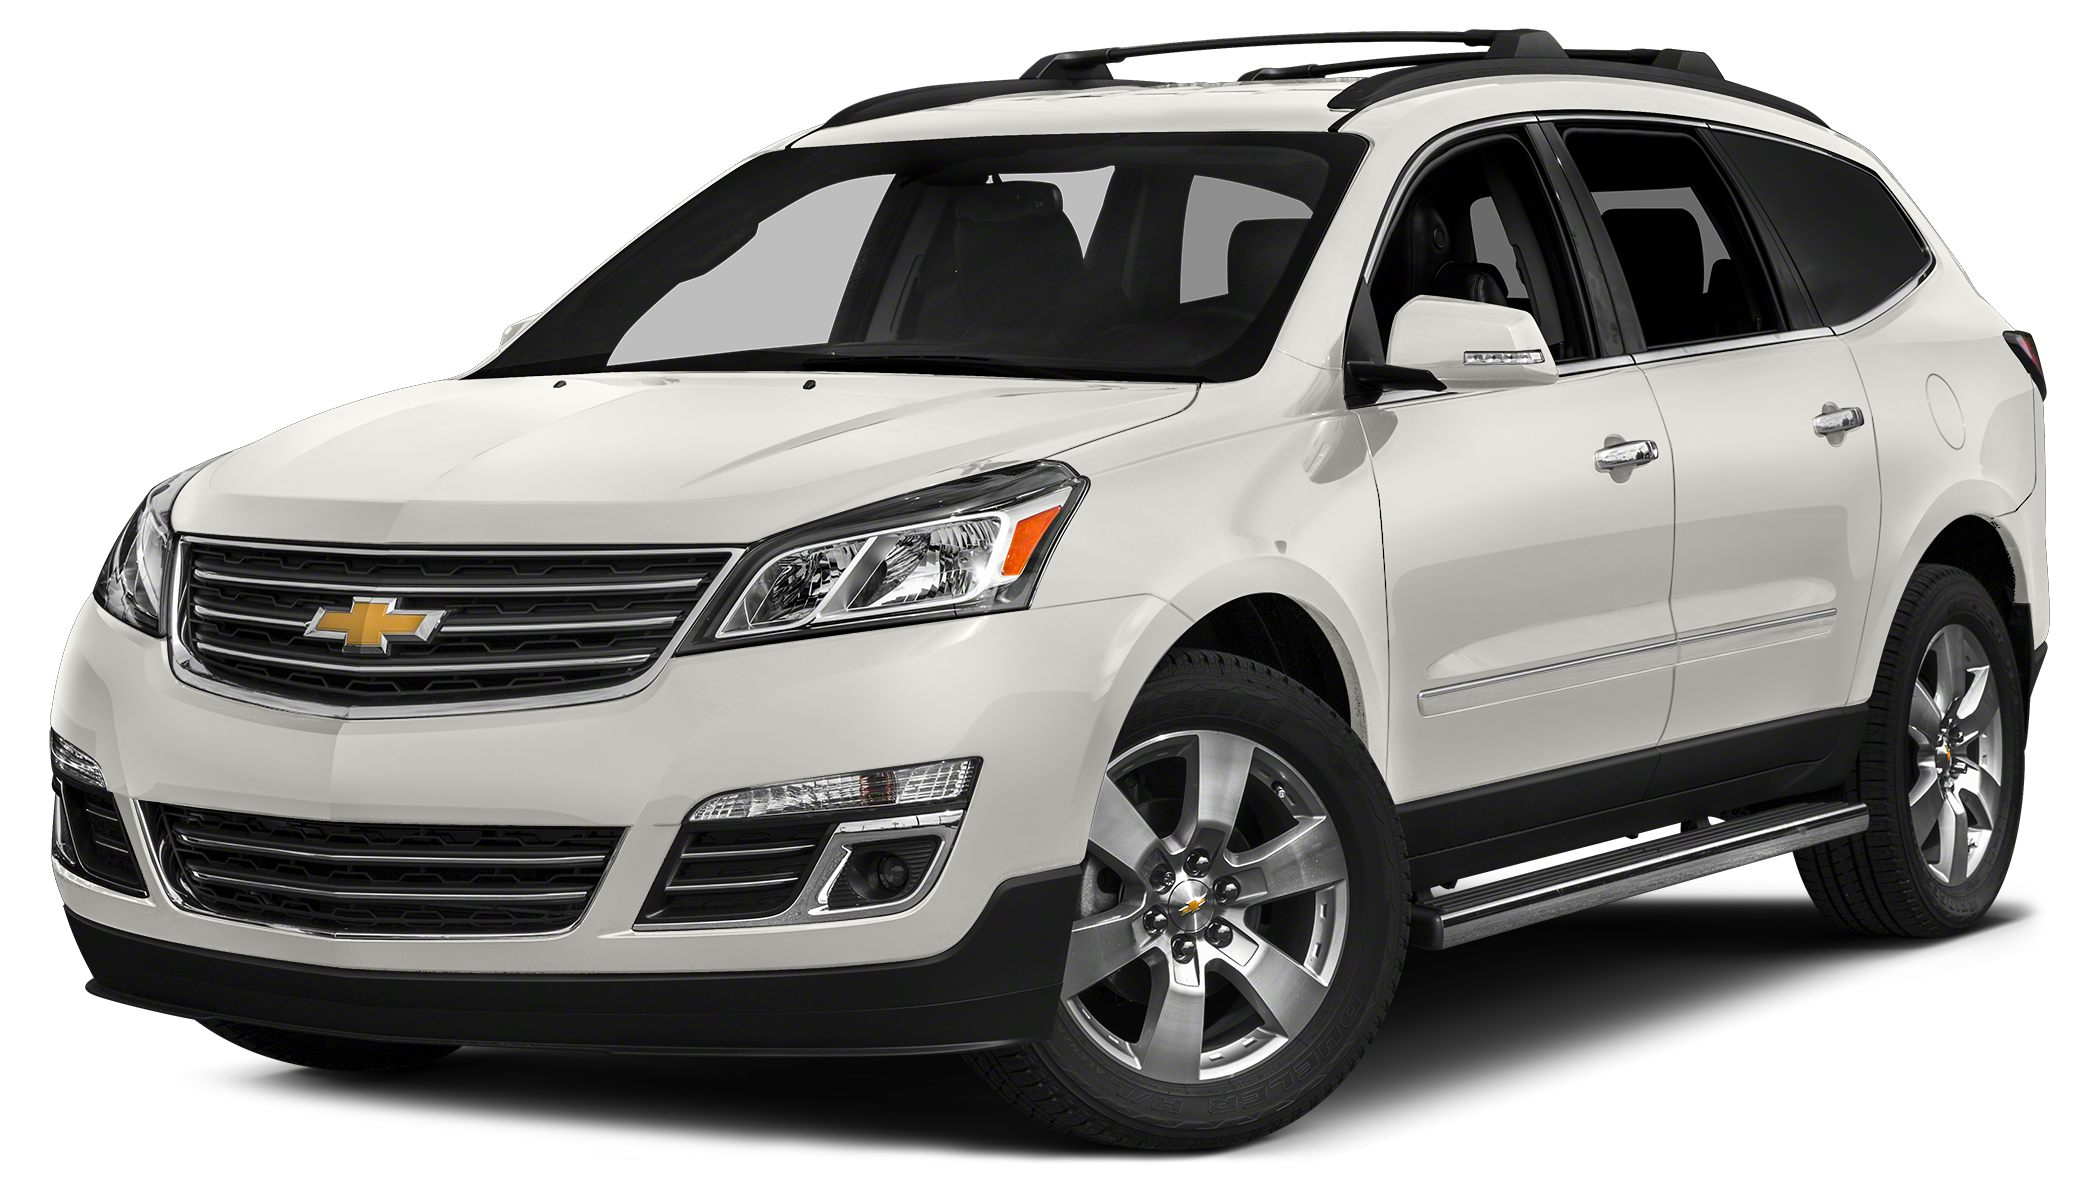 2013 Chevrolet Traverse LTZ A ONE OWNER LOCAL TRADE-IN WITH LOW MILES Buy with confidence - local